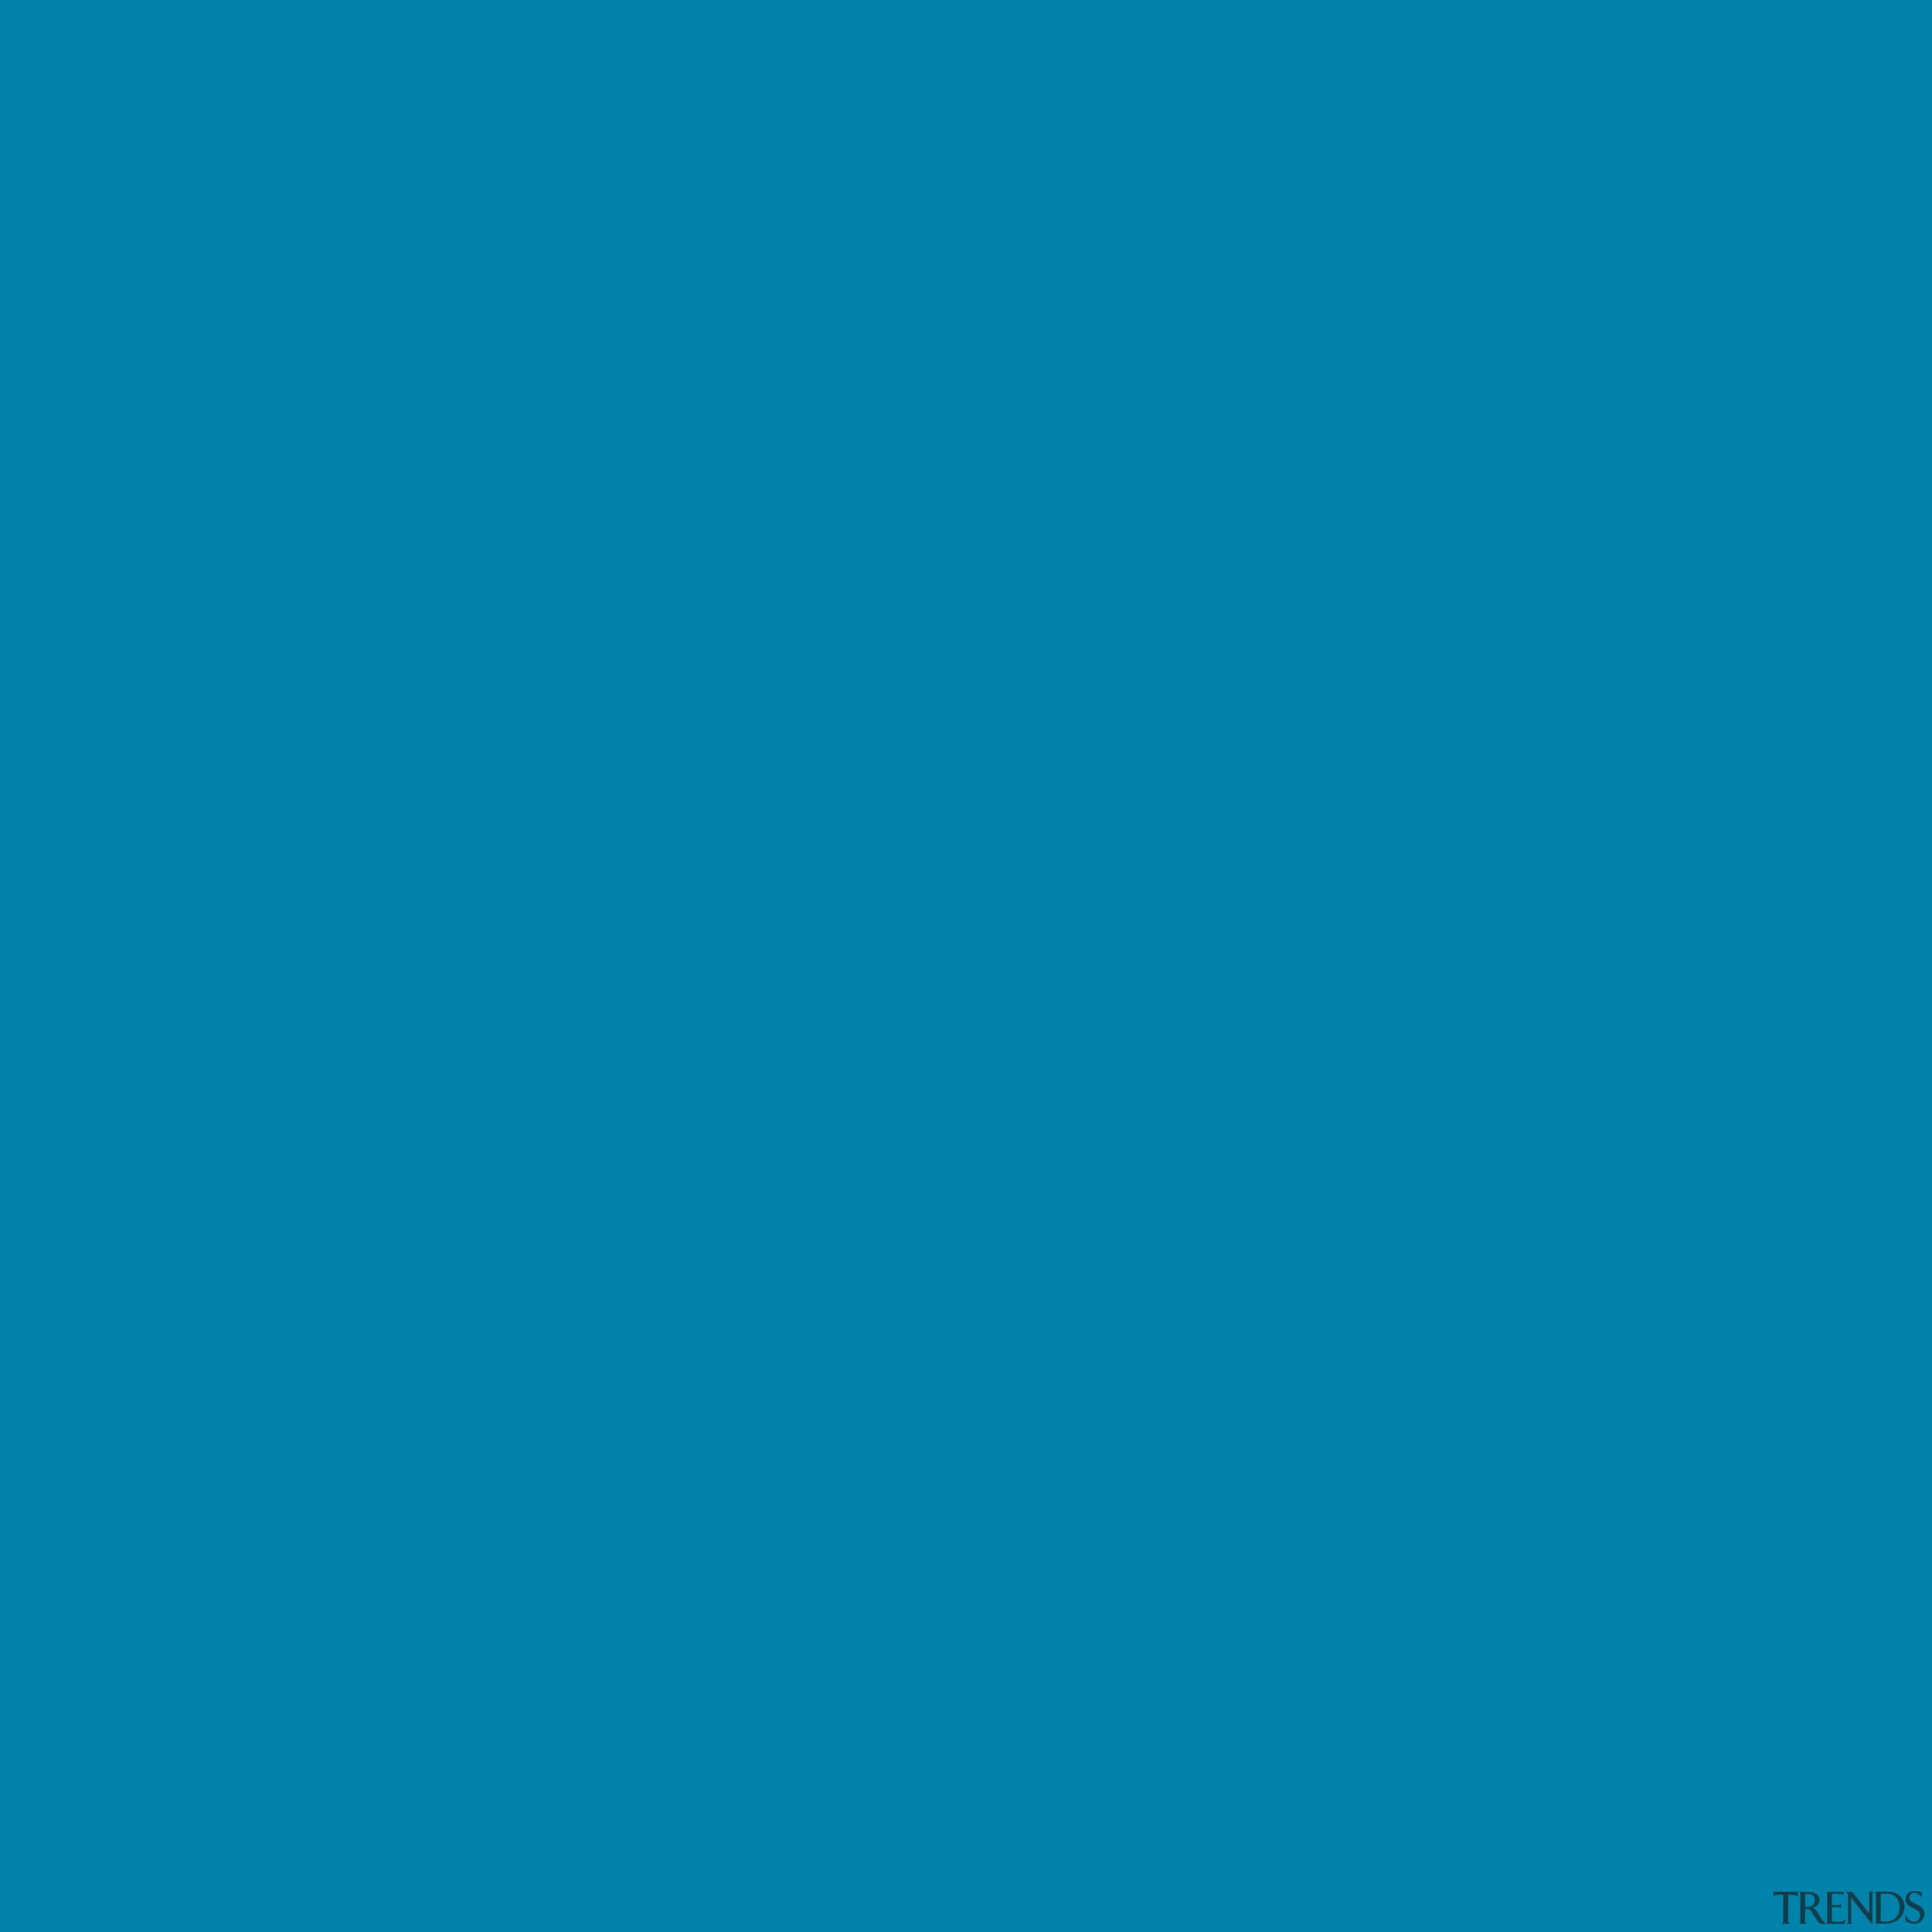 Image of colour options available from Resene Colourshop. aqua, azure, blue, computer wallpaper, font, green, line, sky, teal, text, turquoise, teal